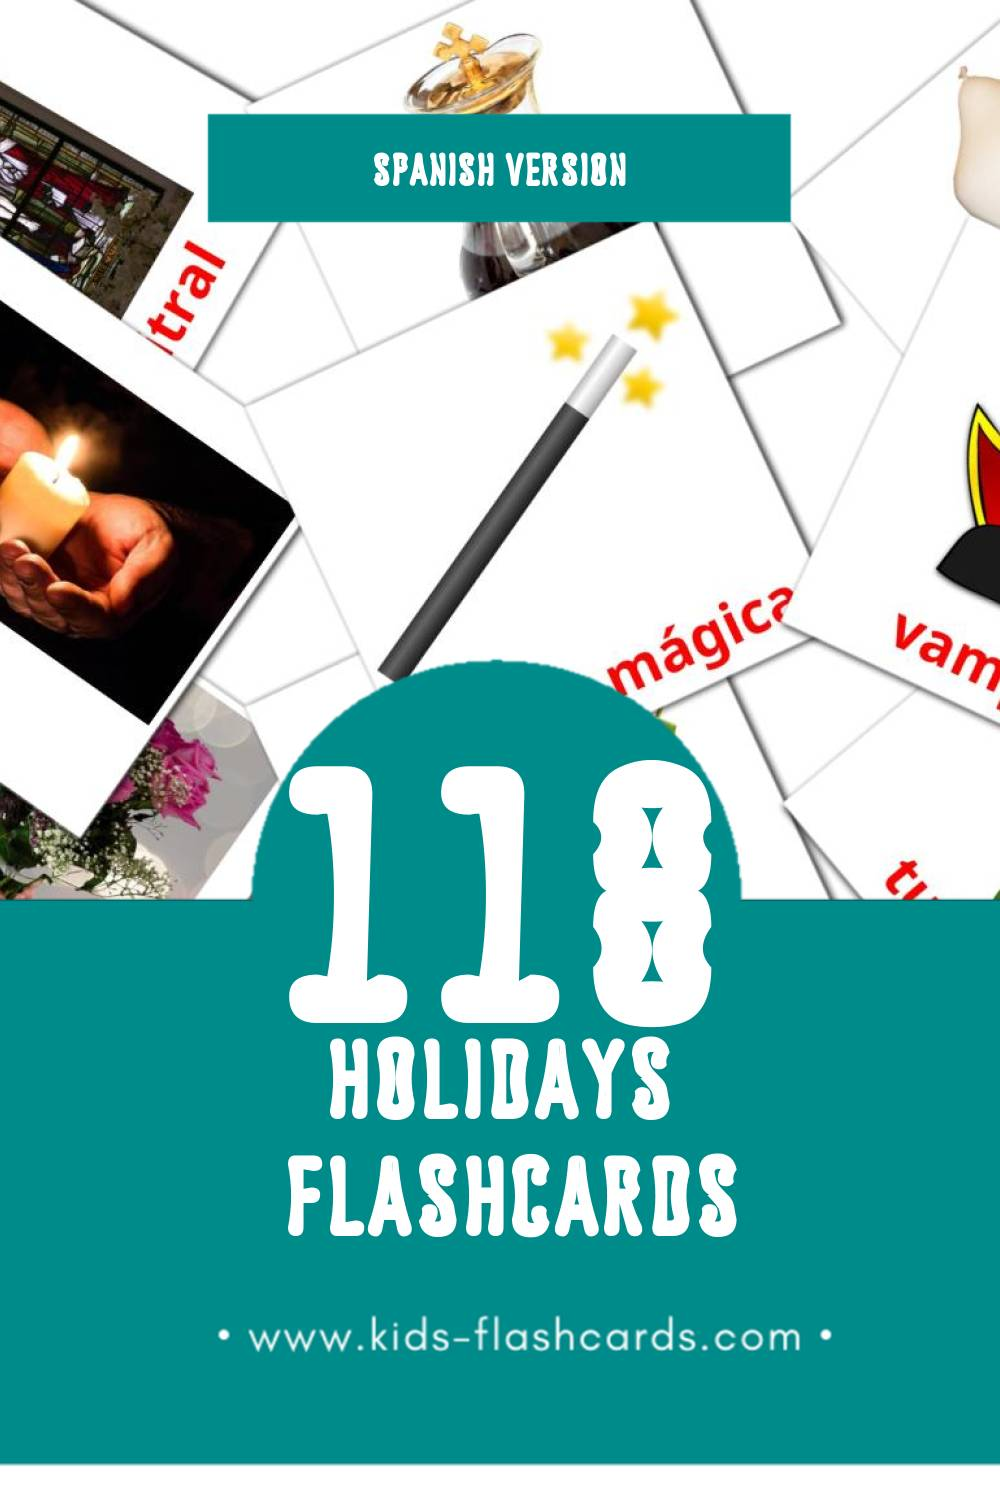 Visual Vacaciones Flashcards for Toddlers (69 cards in Spanish)